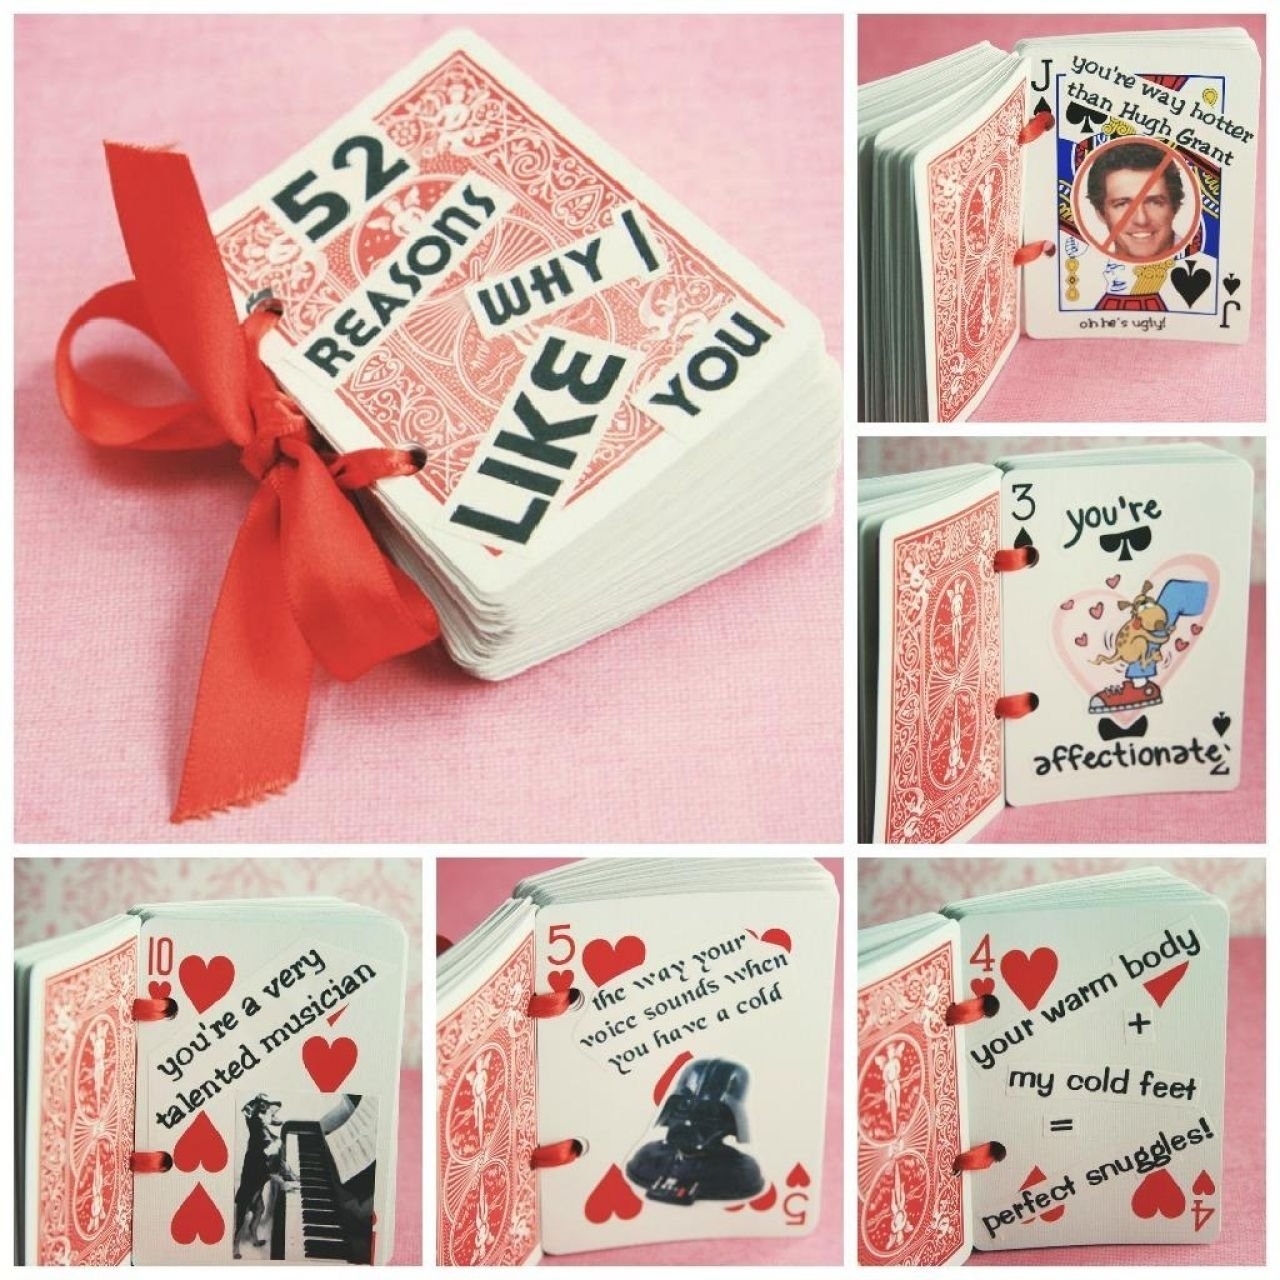 10 Elegant Gift Ideas For Valentines Day For Him valentines day crafts him lovely valentine gifts your dma homes 2020